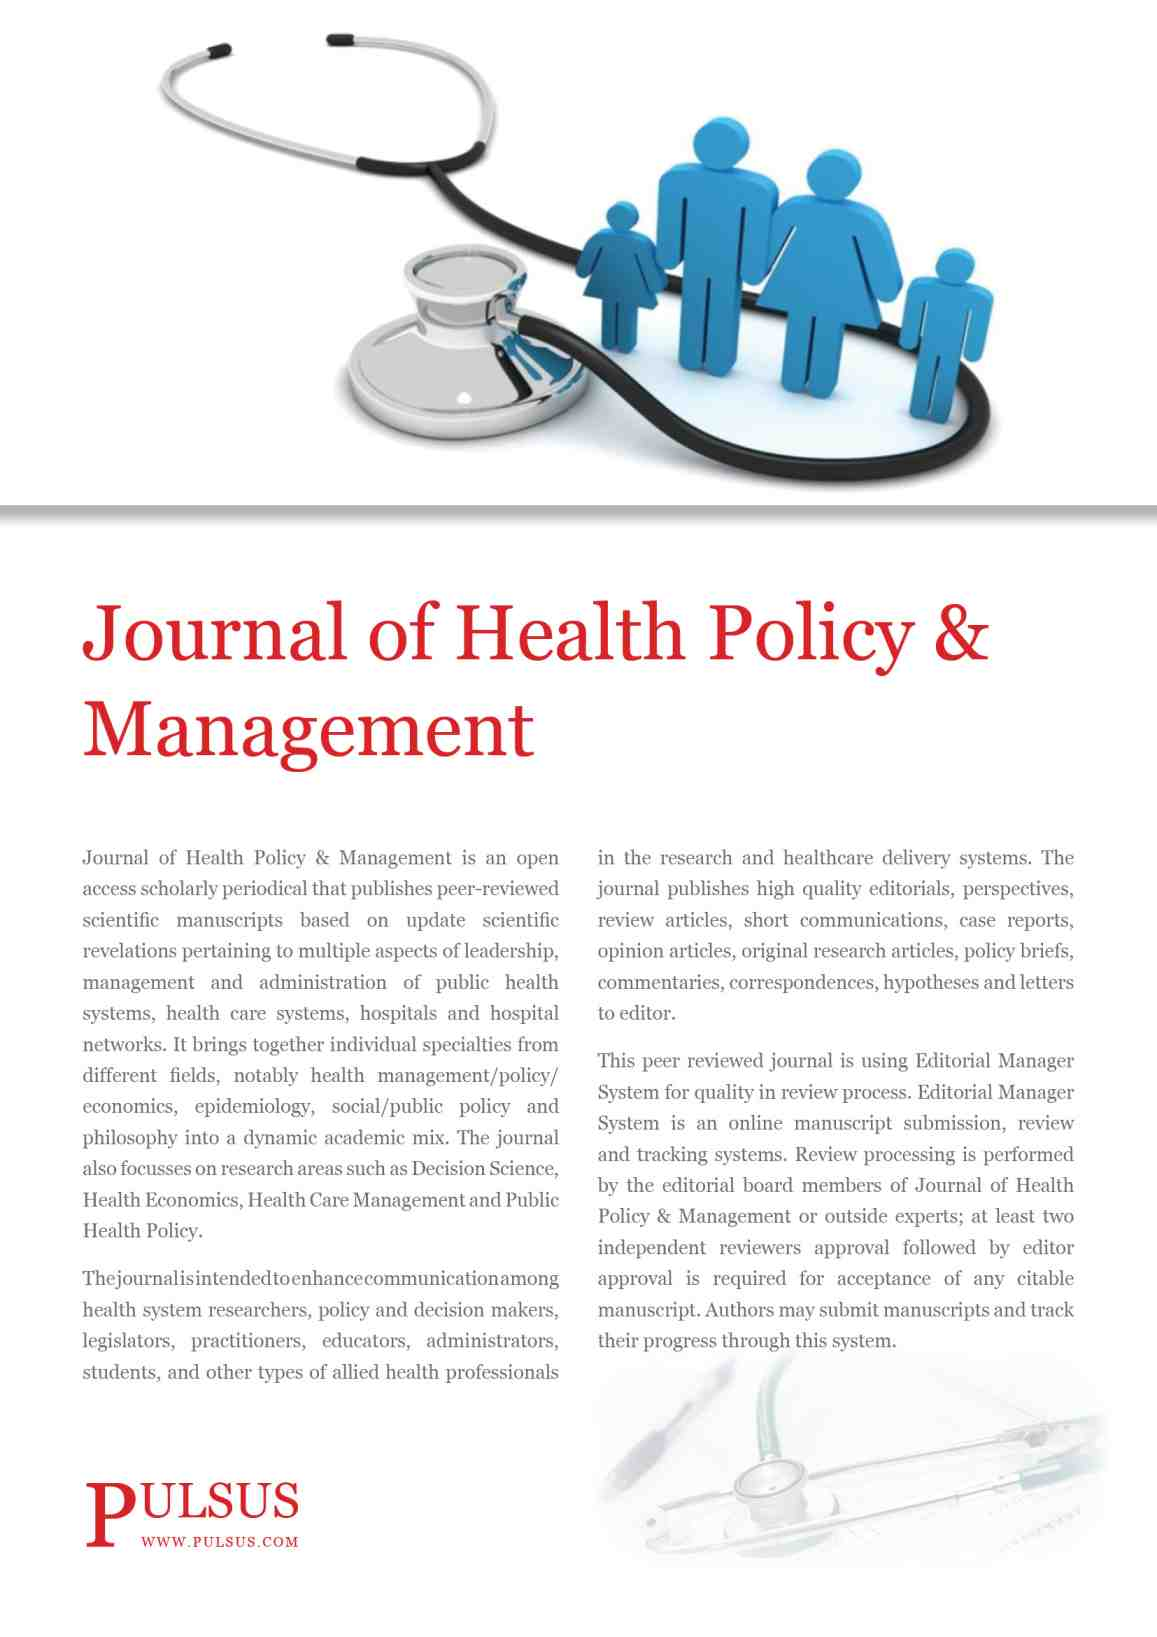 Journal of Health Policy & Management